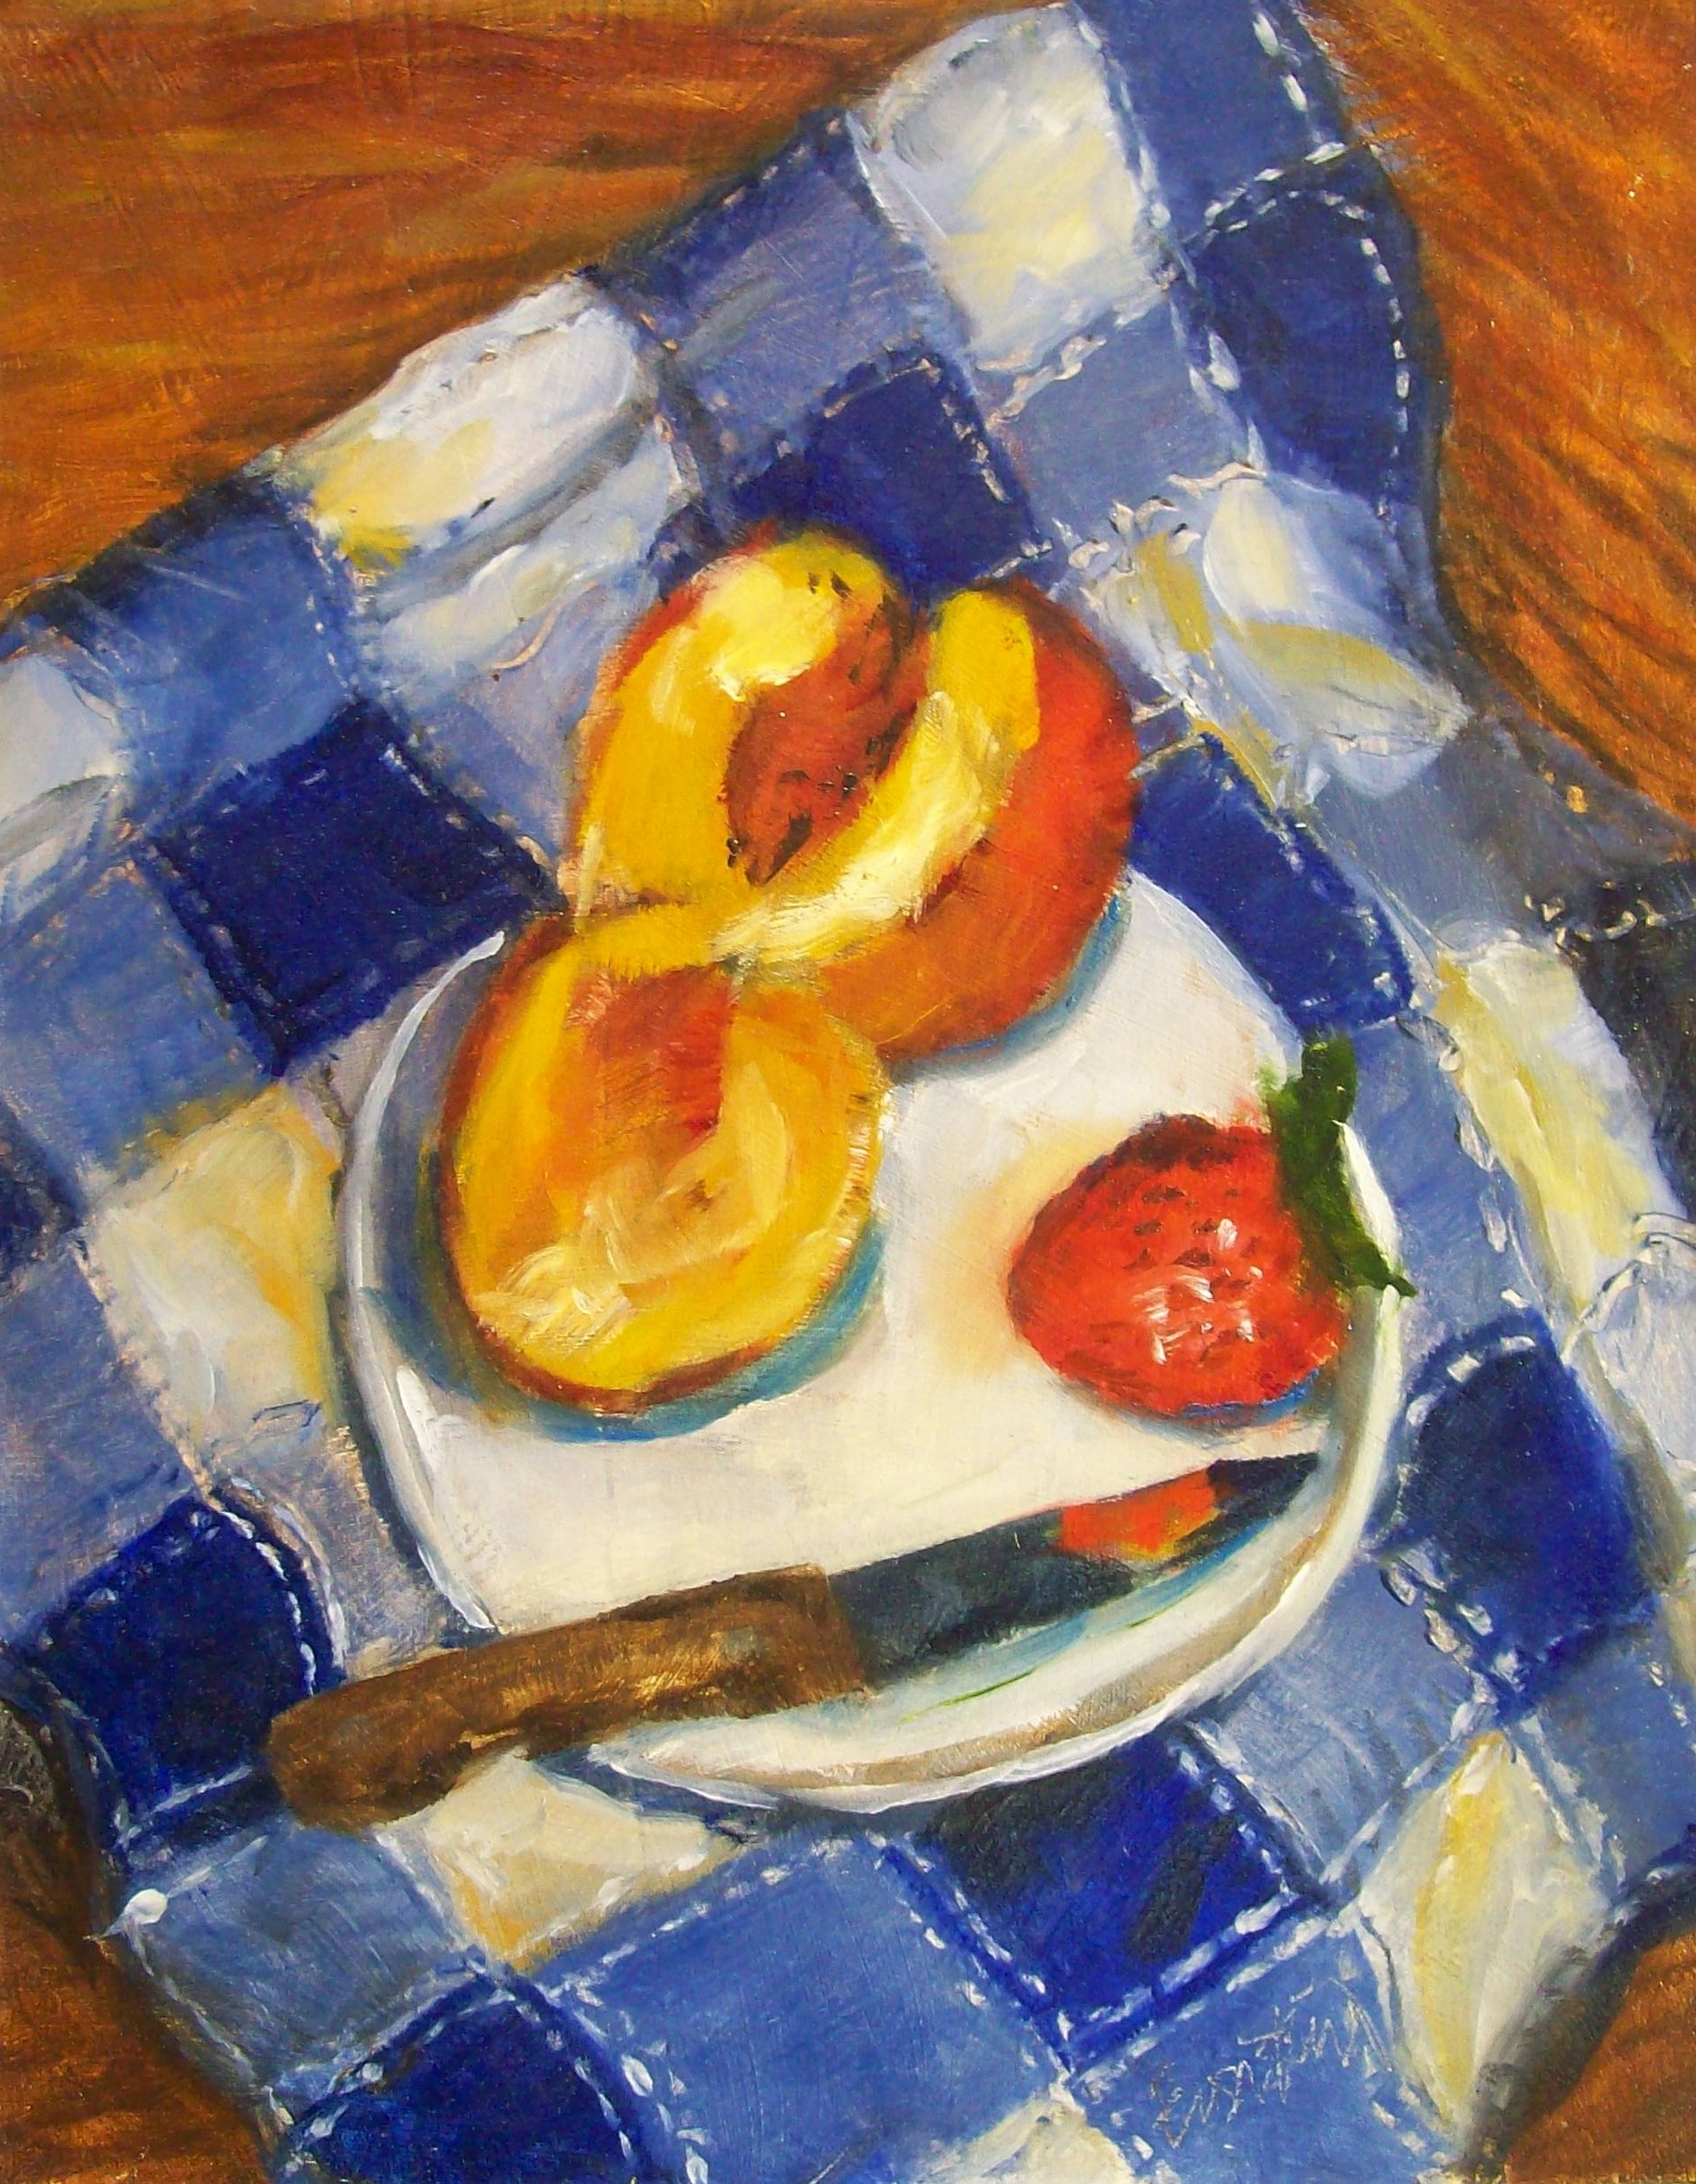 Peaches 20strawberry 20and 20knife 20op 2011x14 20650